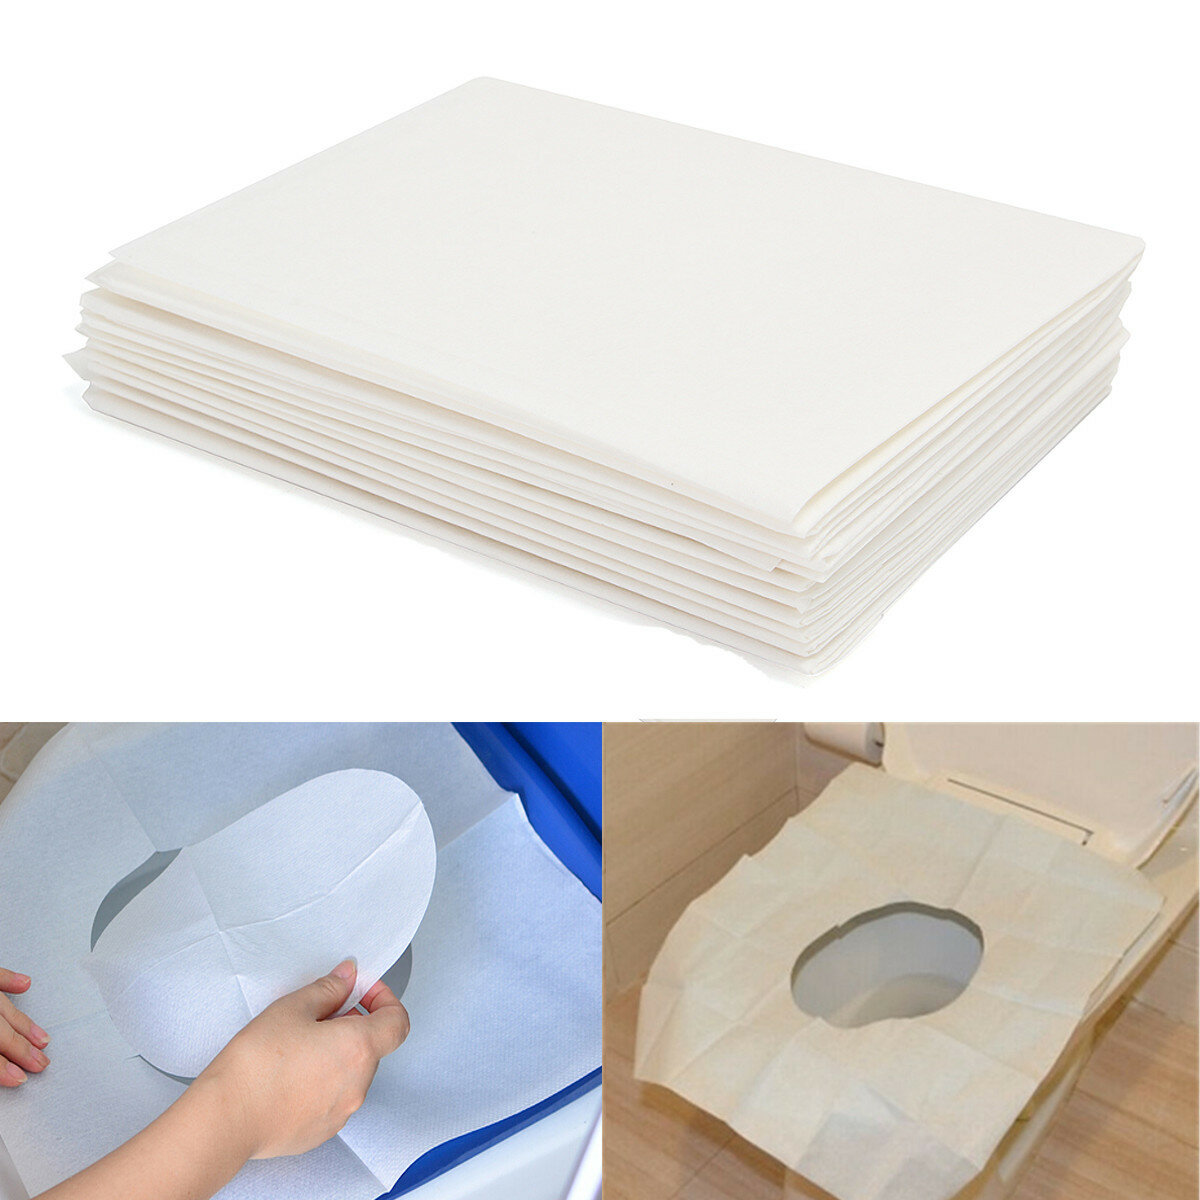 Super 10Pcs Toilet Seat Covers Paper Travel Biodegradable Disposable Sanitary Andrewgaddart Wooden Chair Designs For Living Room Andrewgaddartcom